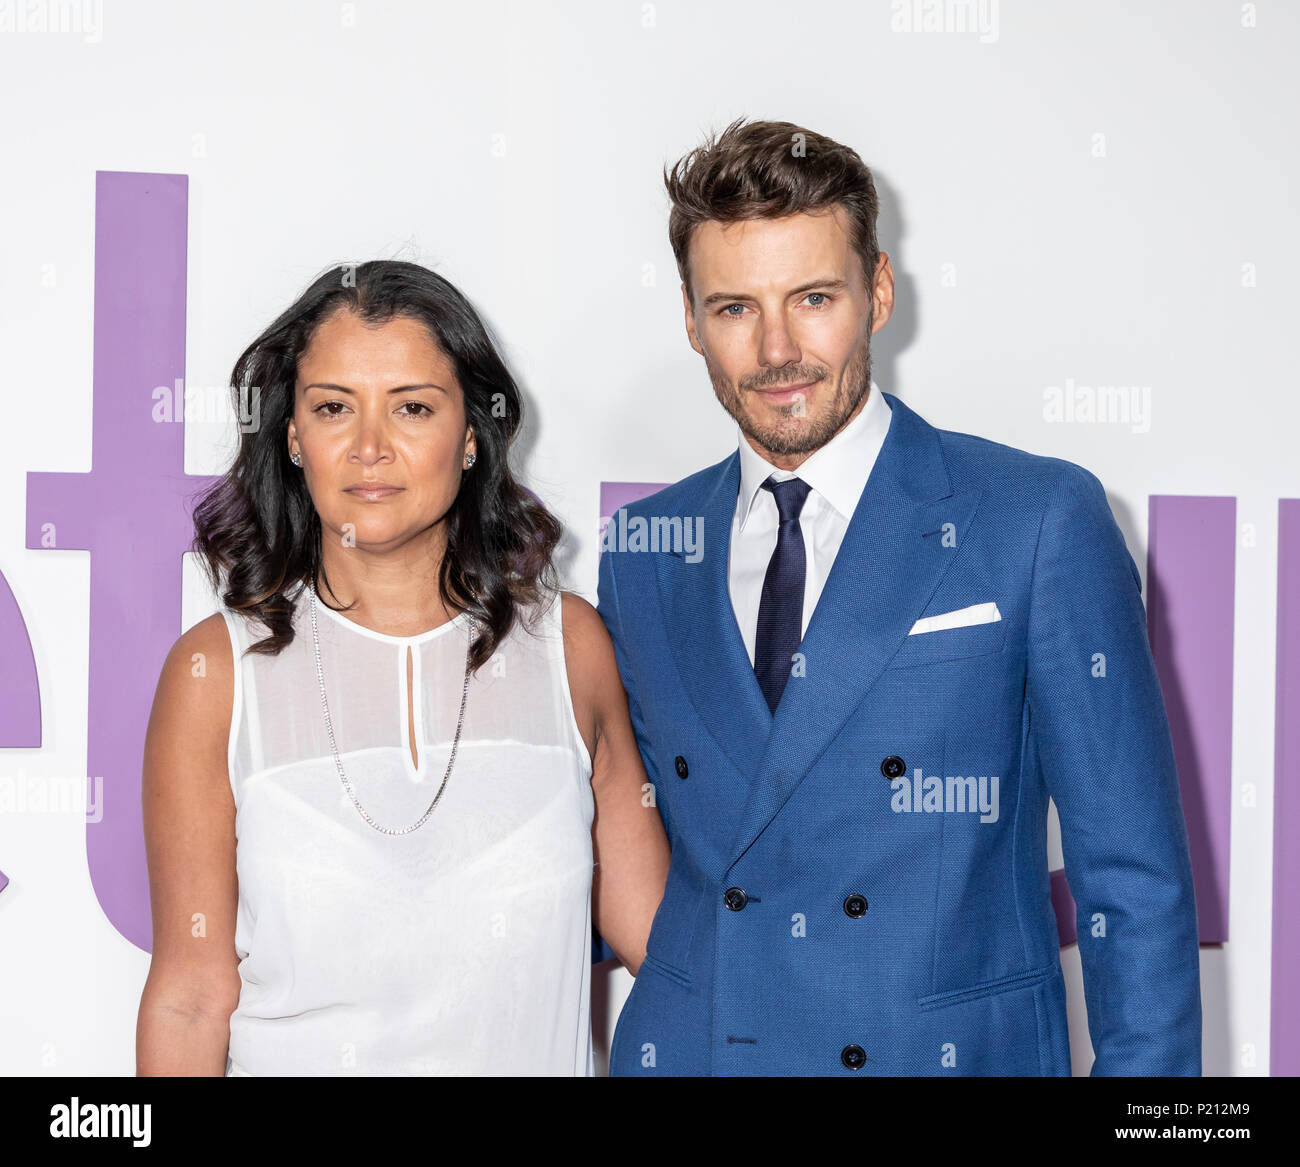 New York, NY, USA - June 12, 2018: Keytt Lundqvist and Alex Lundqvist attend the New York special screening of the Netflix film 'Set It Up' at AMC Loews Lincoln Square Credit: Sam Aronov/Alamy Live News - Stock Image